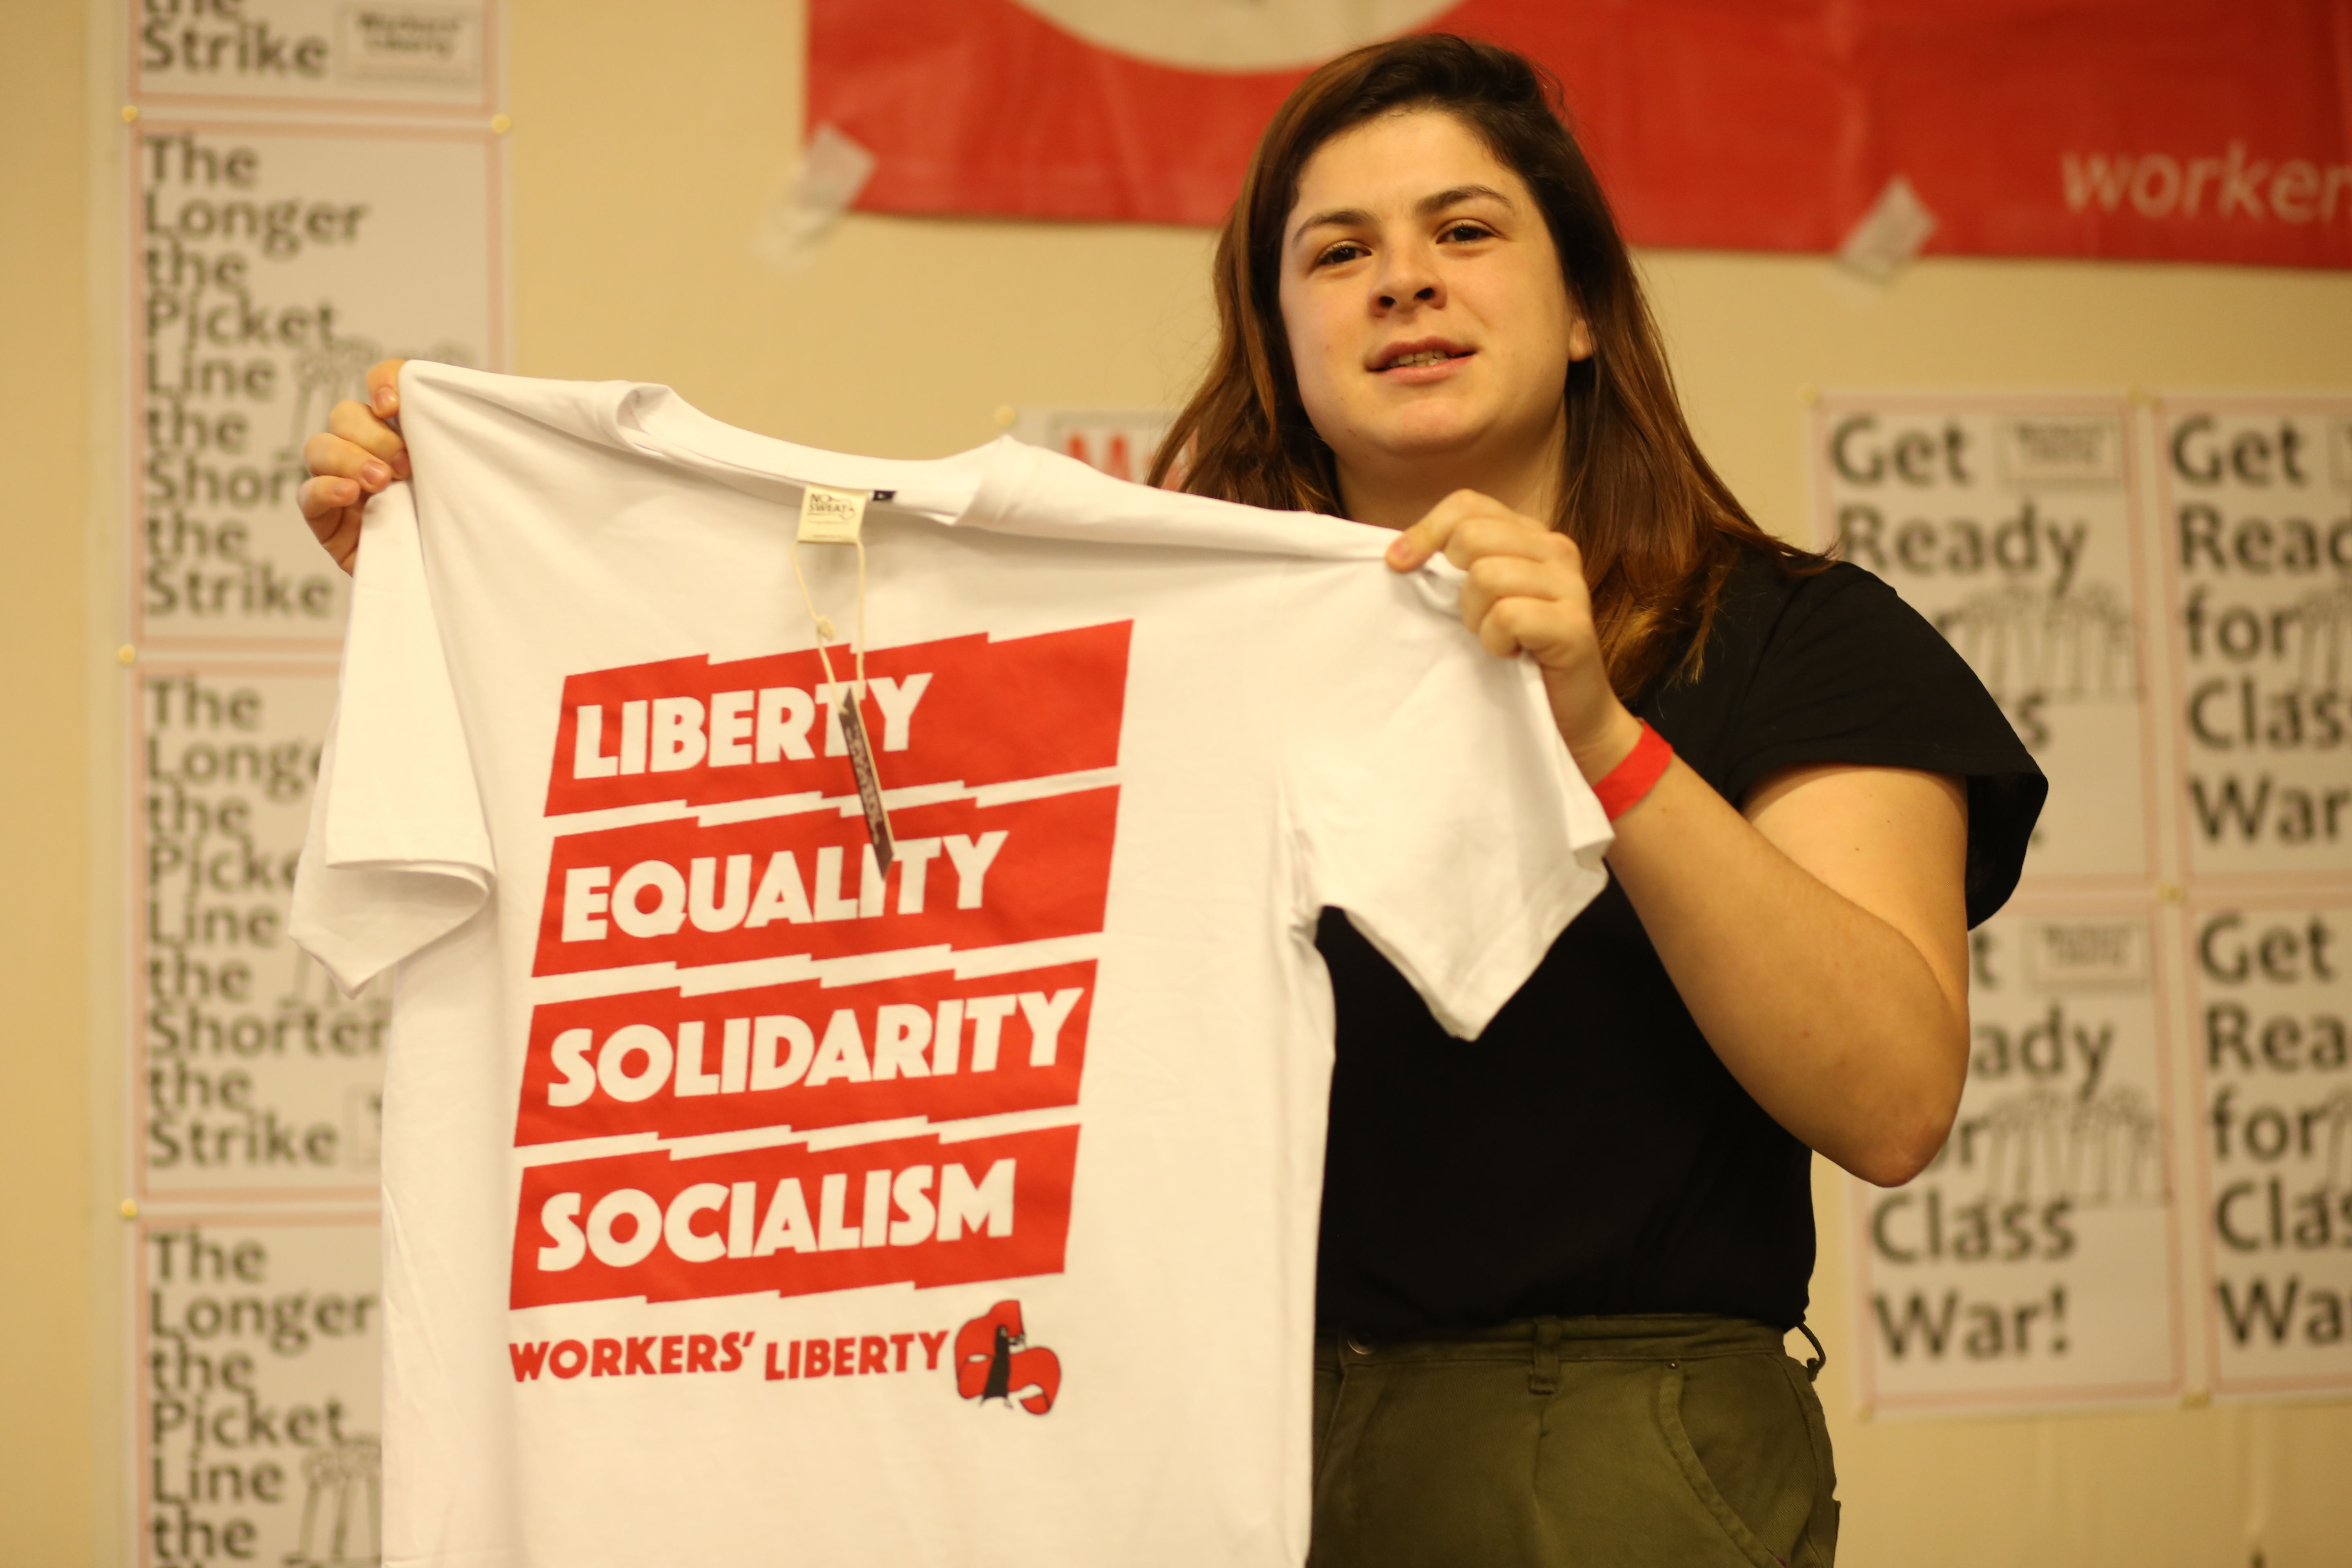 Someone holding up one of the t-shirts, which reads: Liberty, Equality, Solidarity, Socialism, Workers' Liberty.